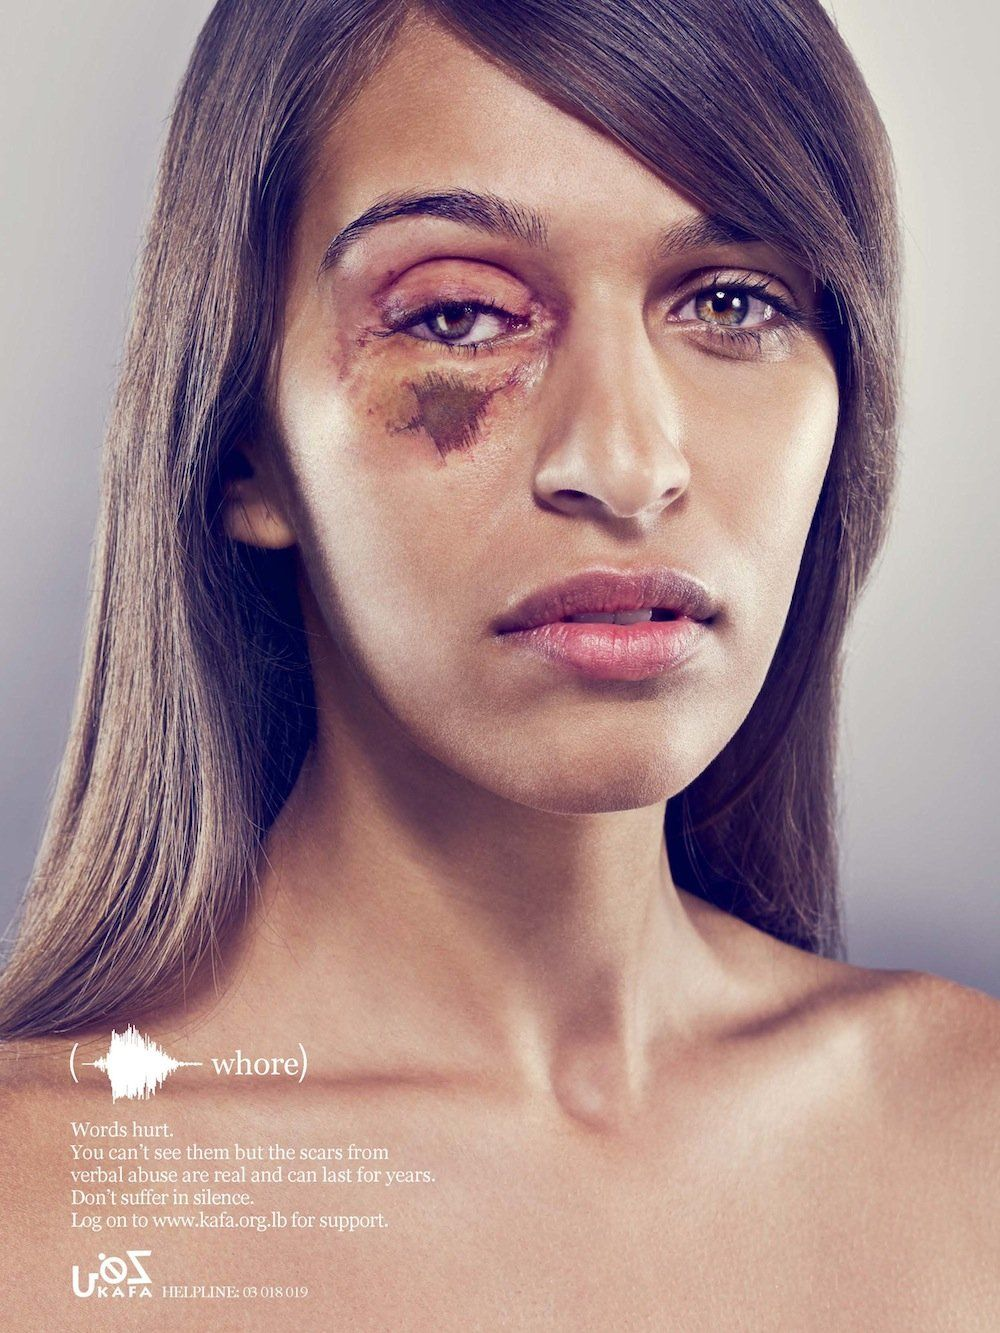 Heres What Domestic Violence Ads Look Like In The Middle East - Extremely powerful photo project shows effects verbal abuse